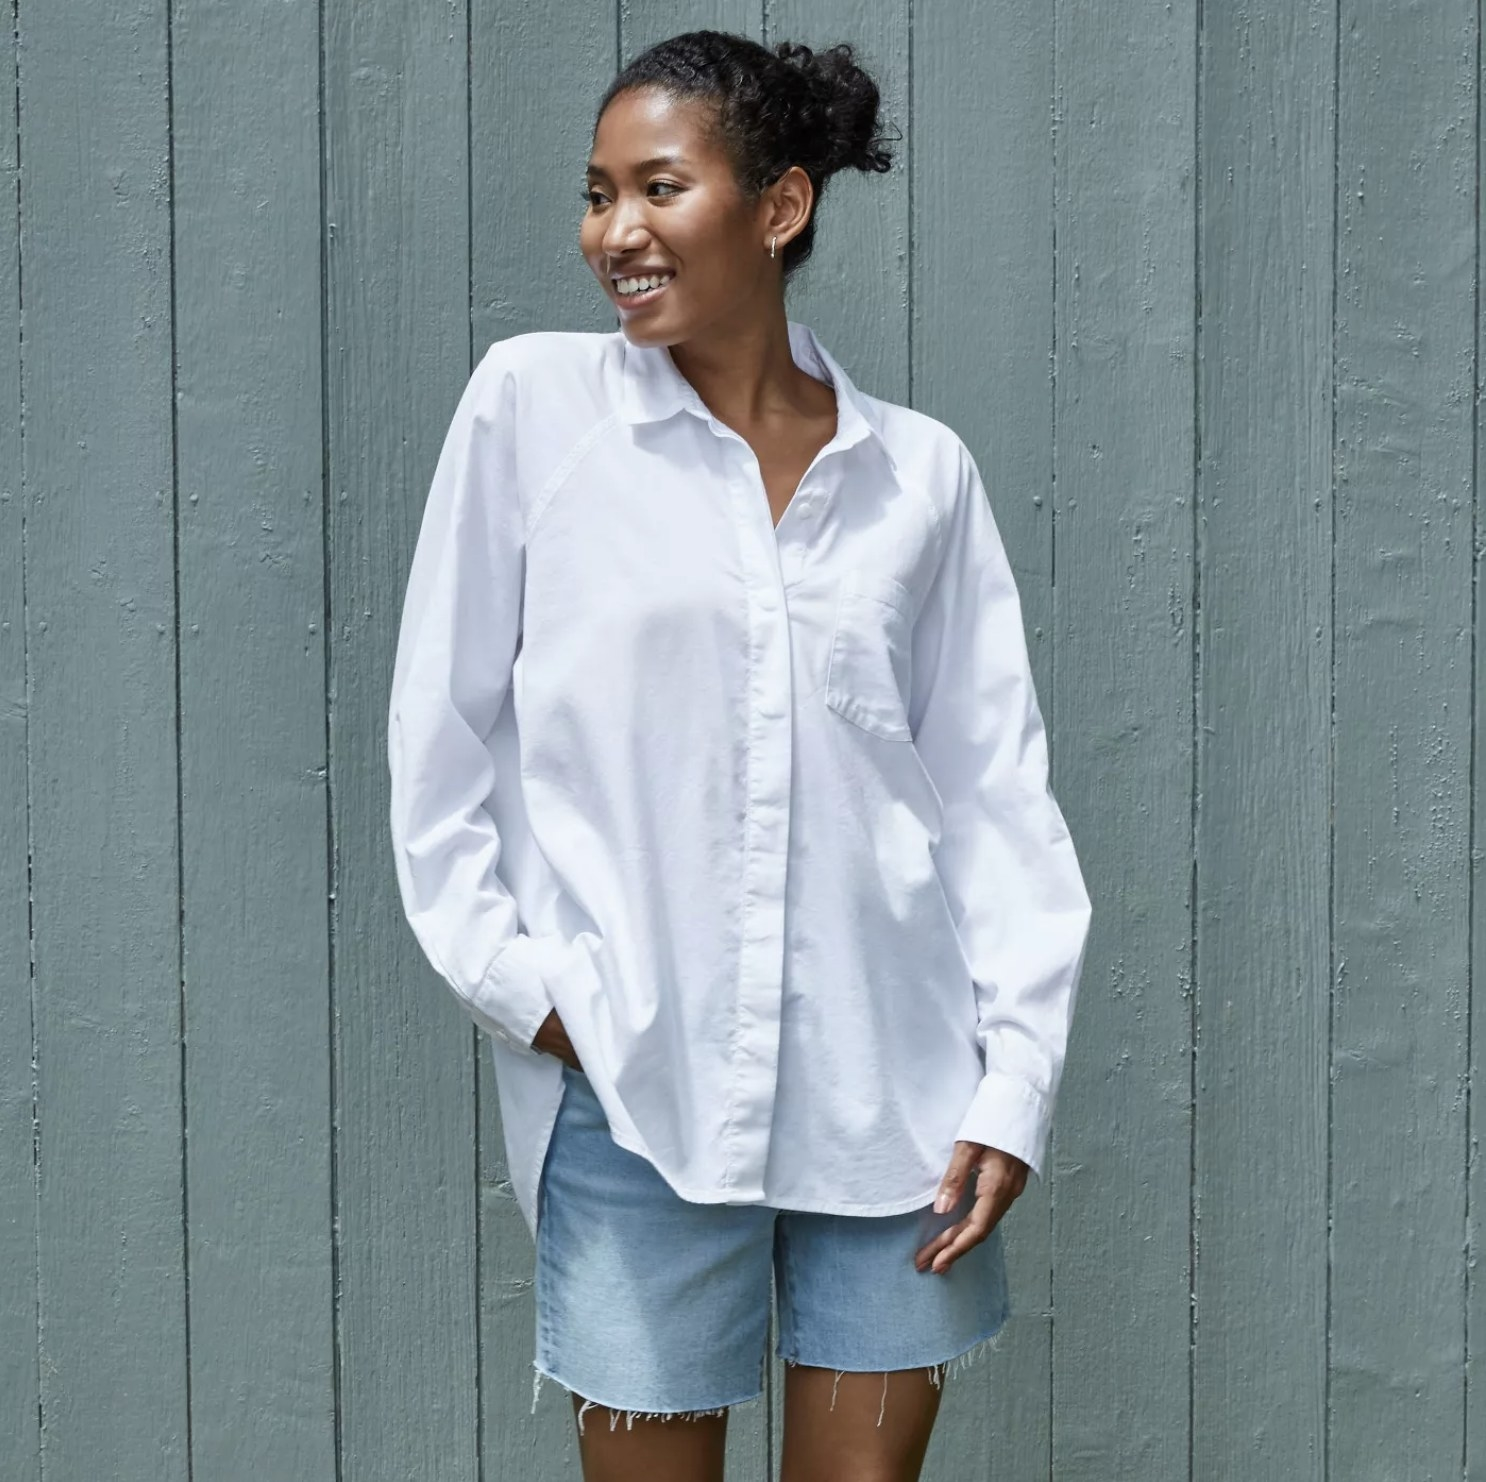 Model is wearing a white oversized button-down long-sleeve boyfriend shirt and jean shorts